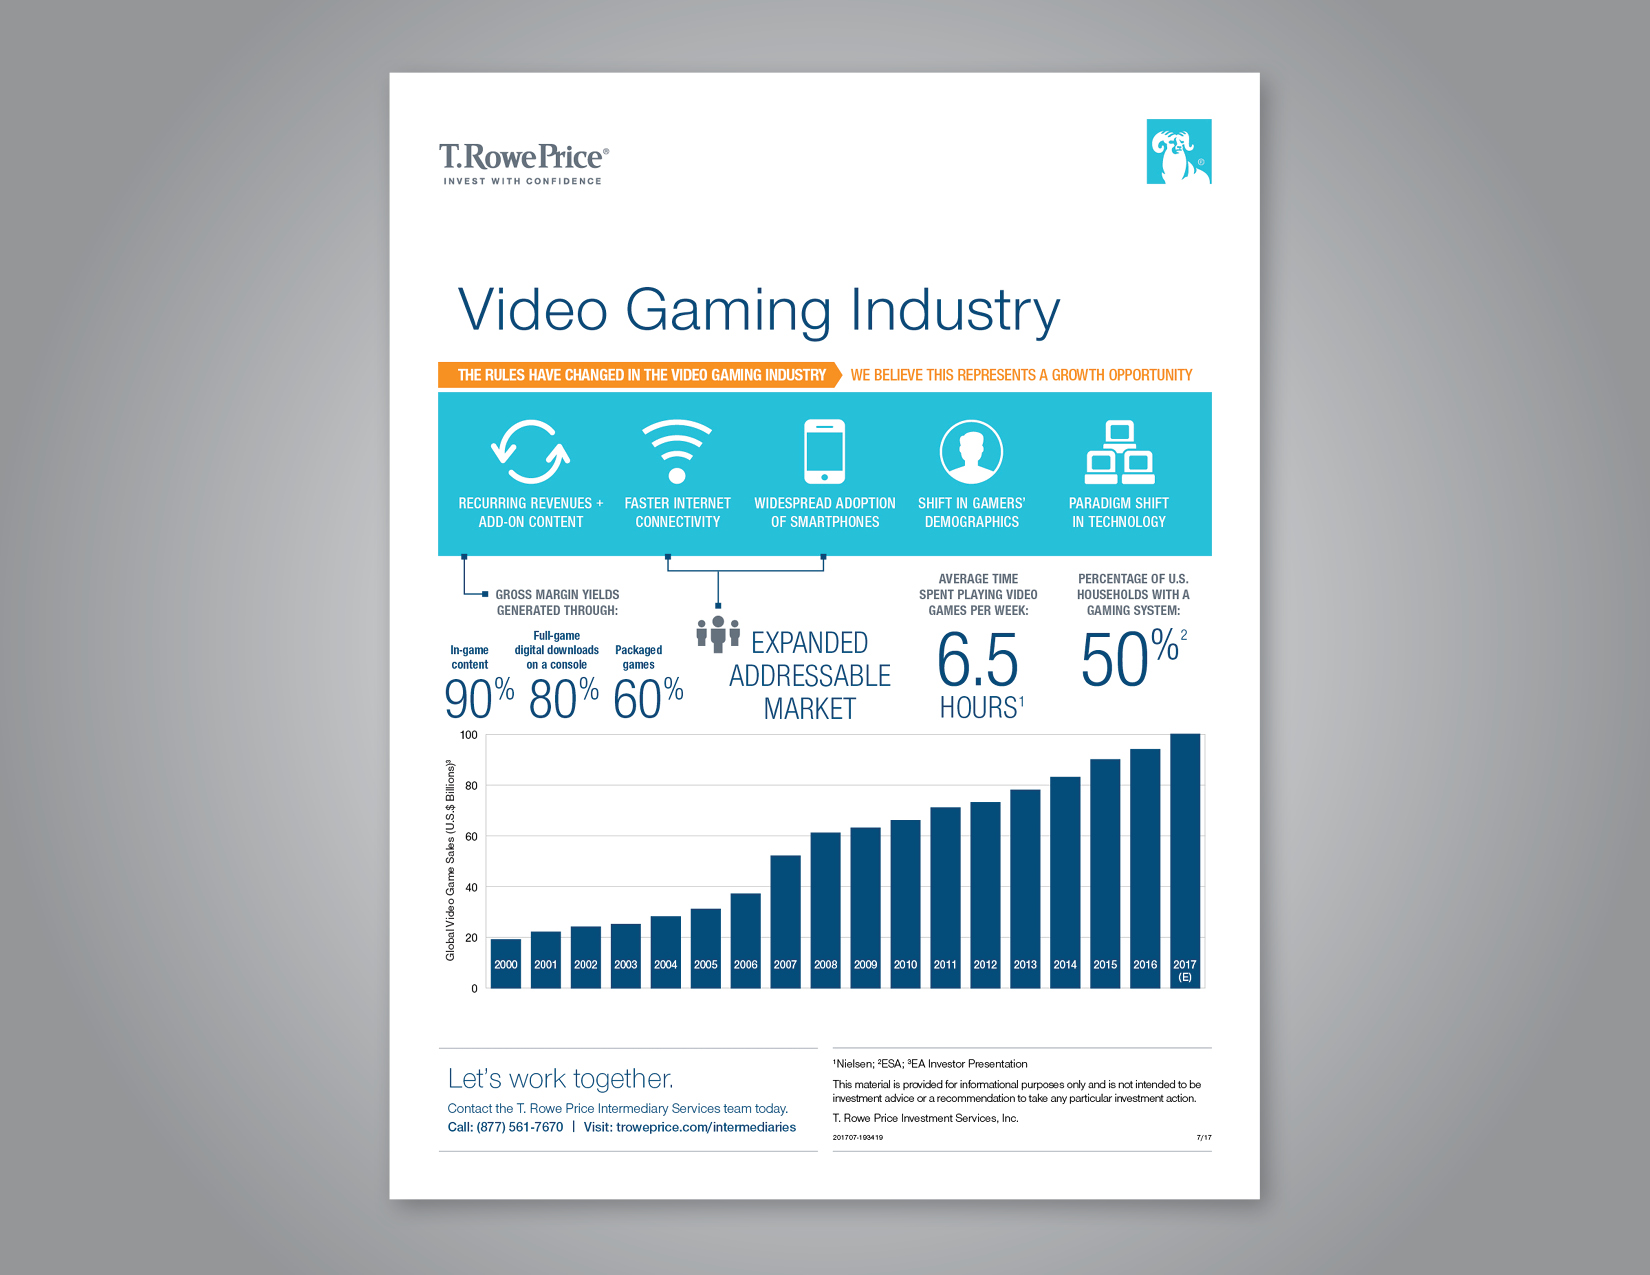 Video gaming industry infographic